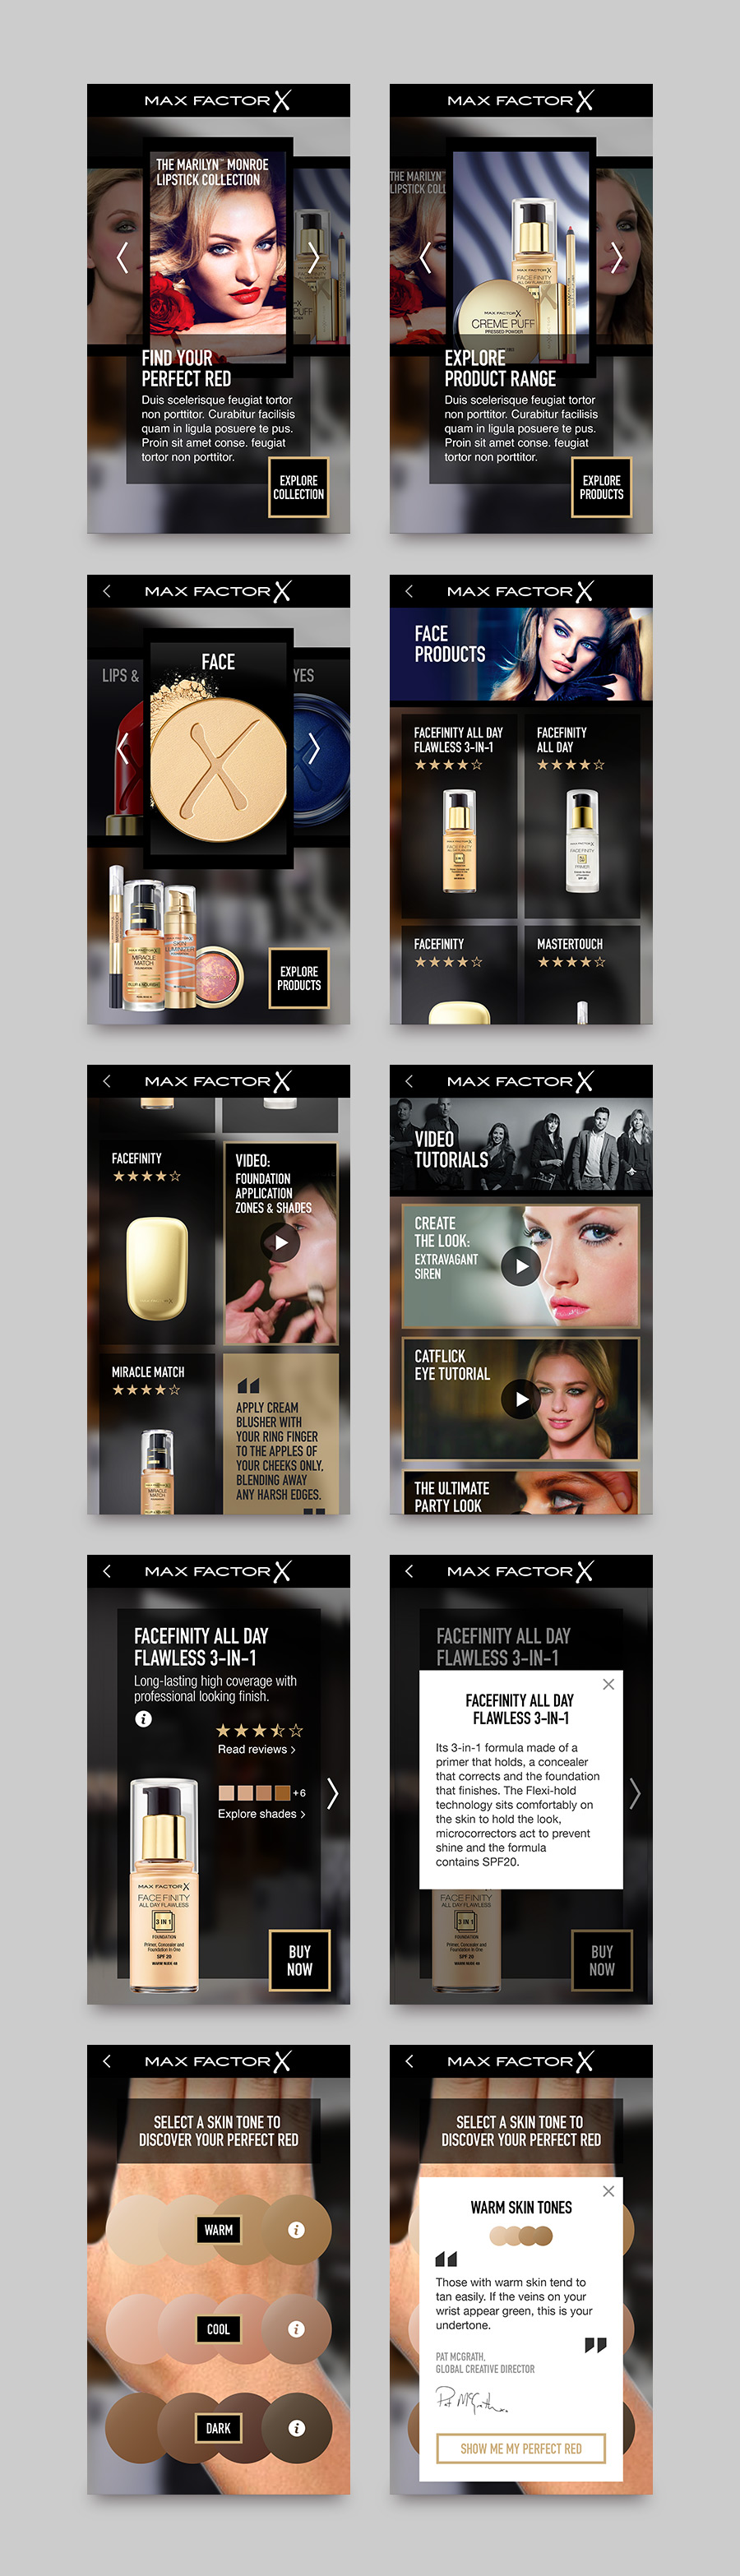 Max Factor augmented reality app